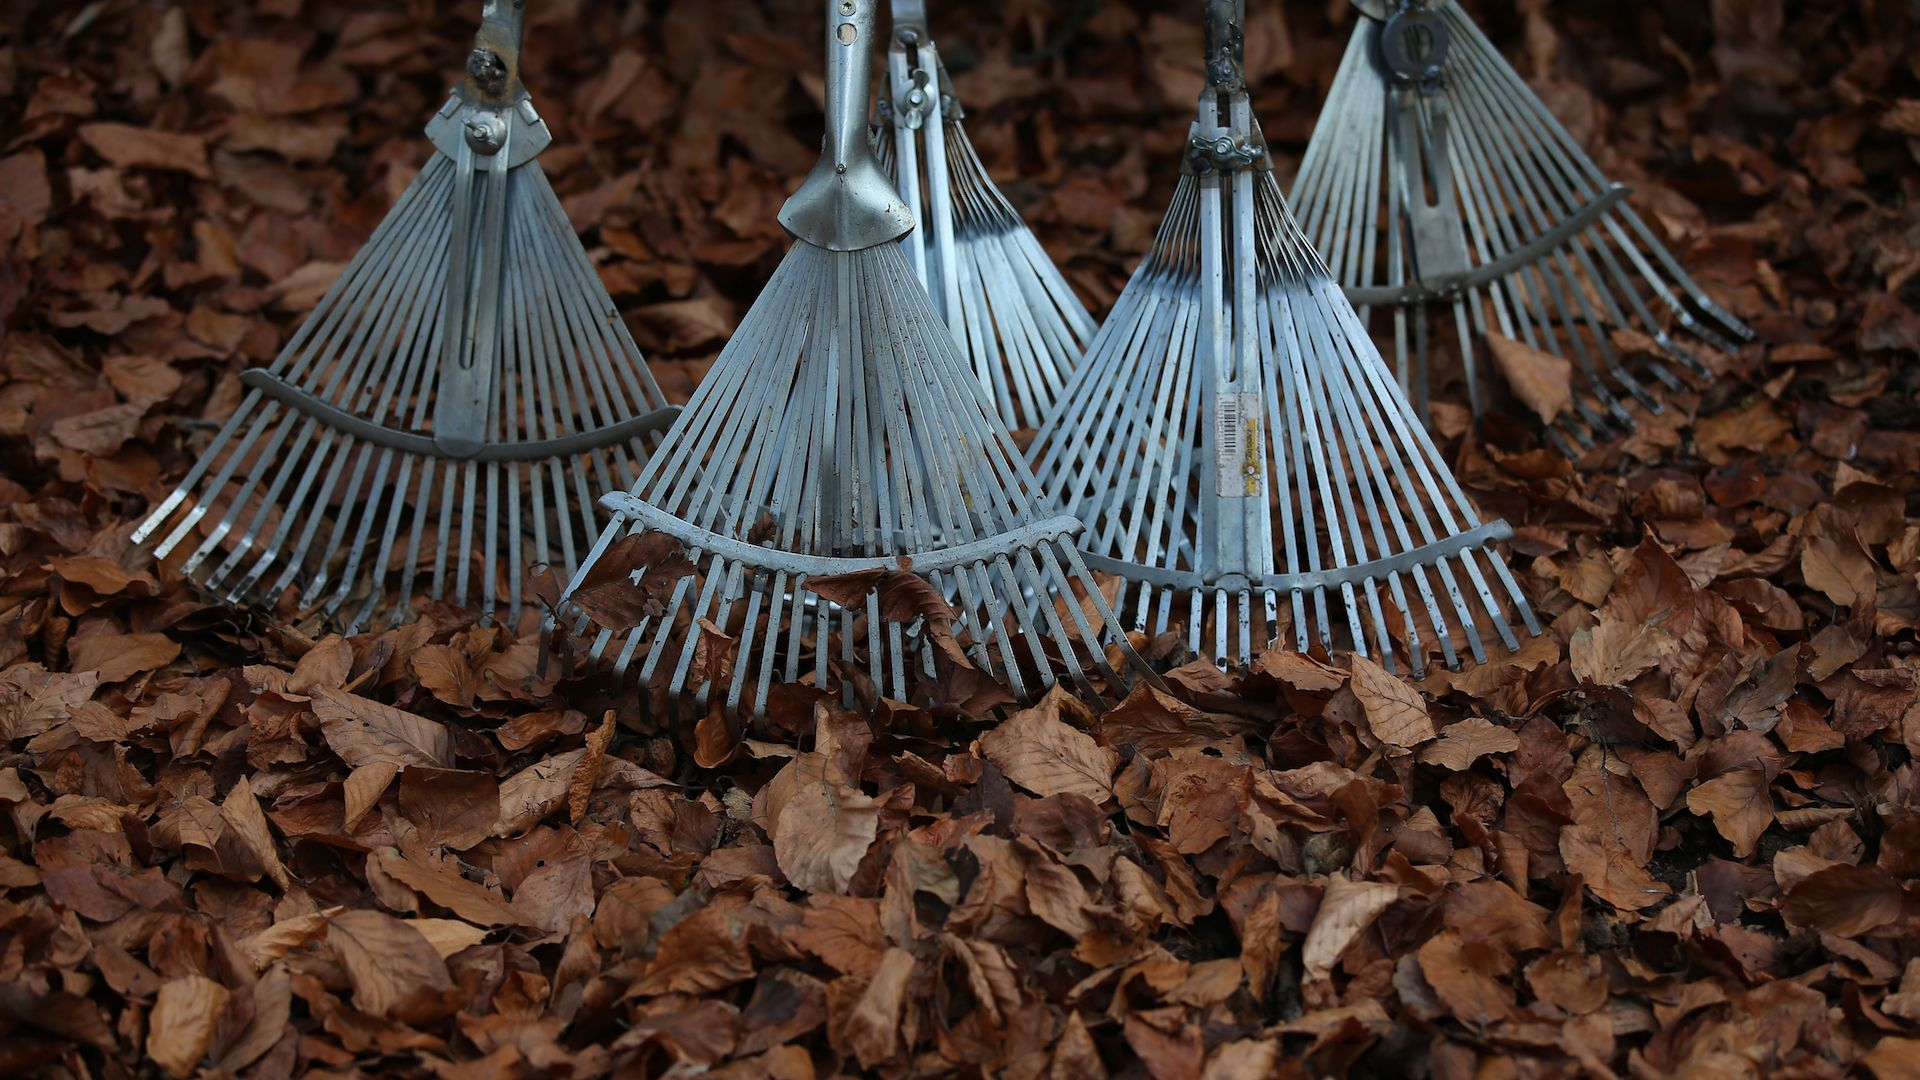 Rakes in the forest in Cologne, Germany.